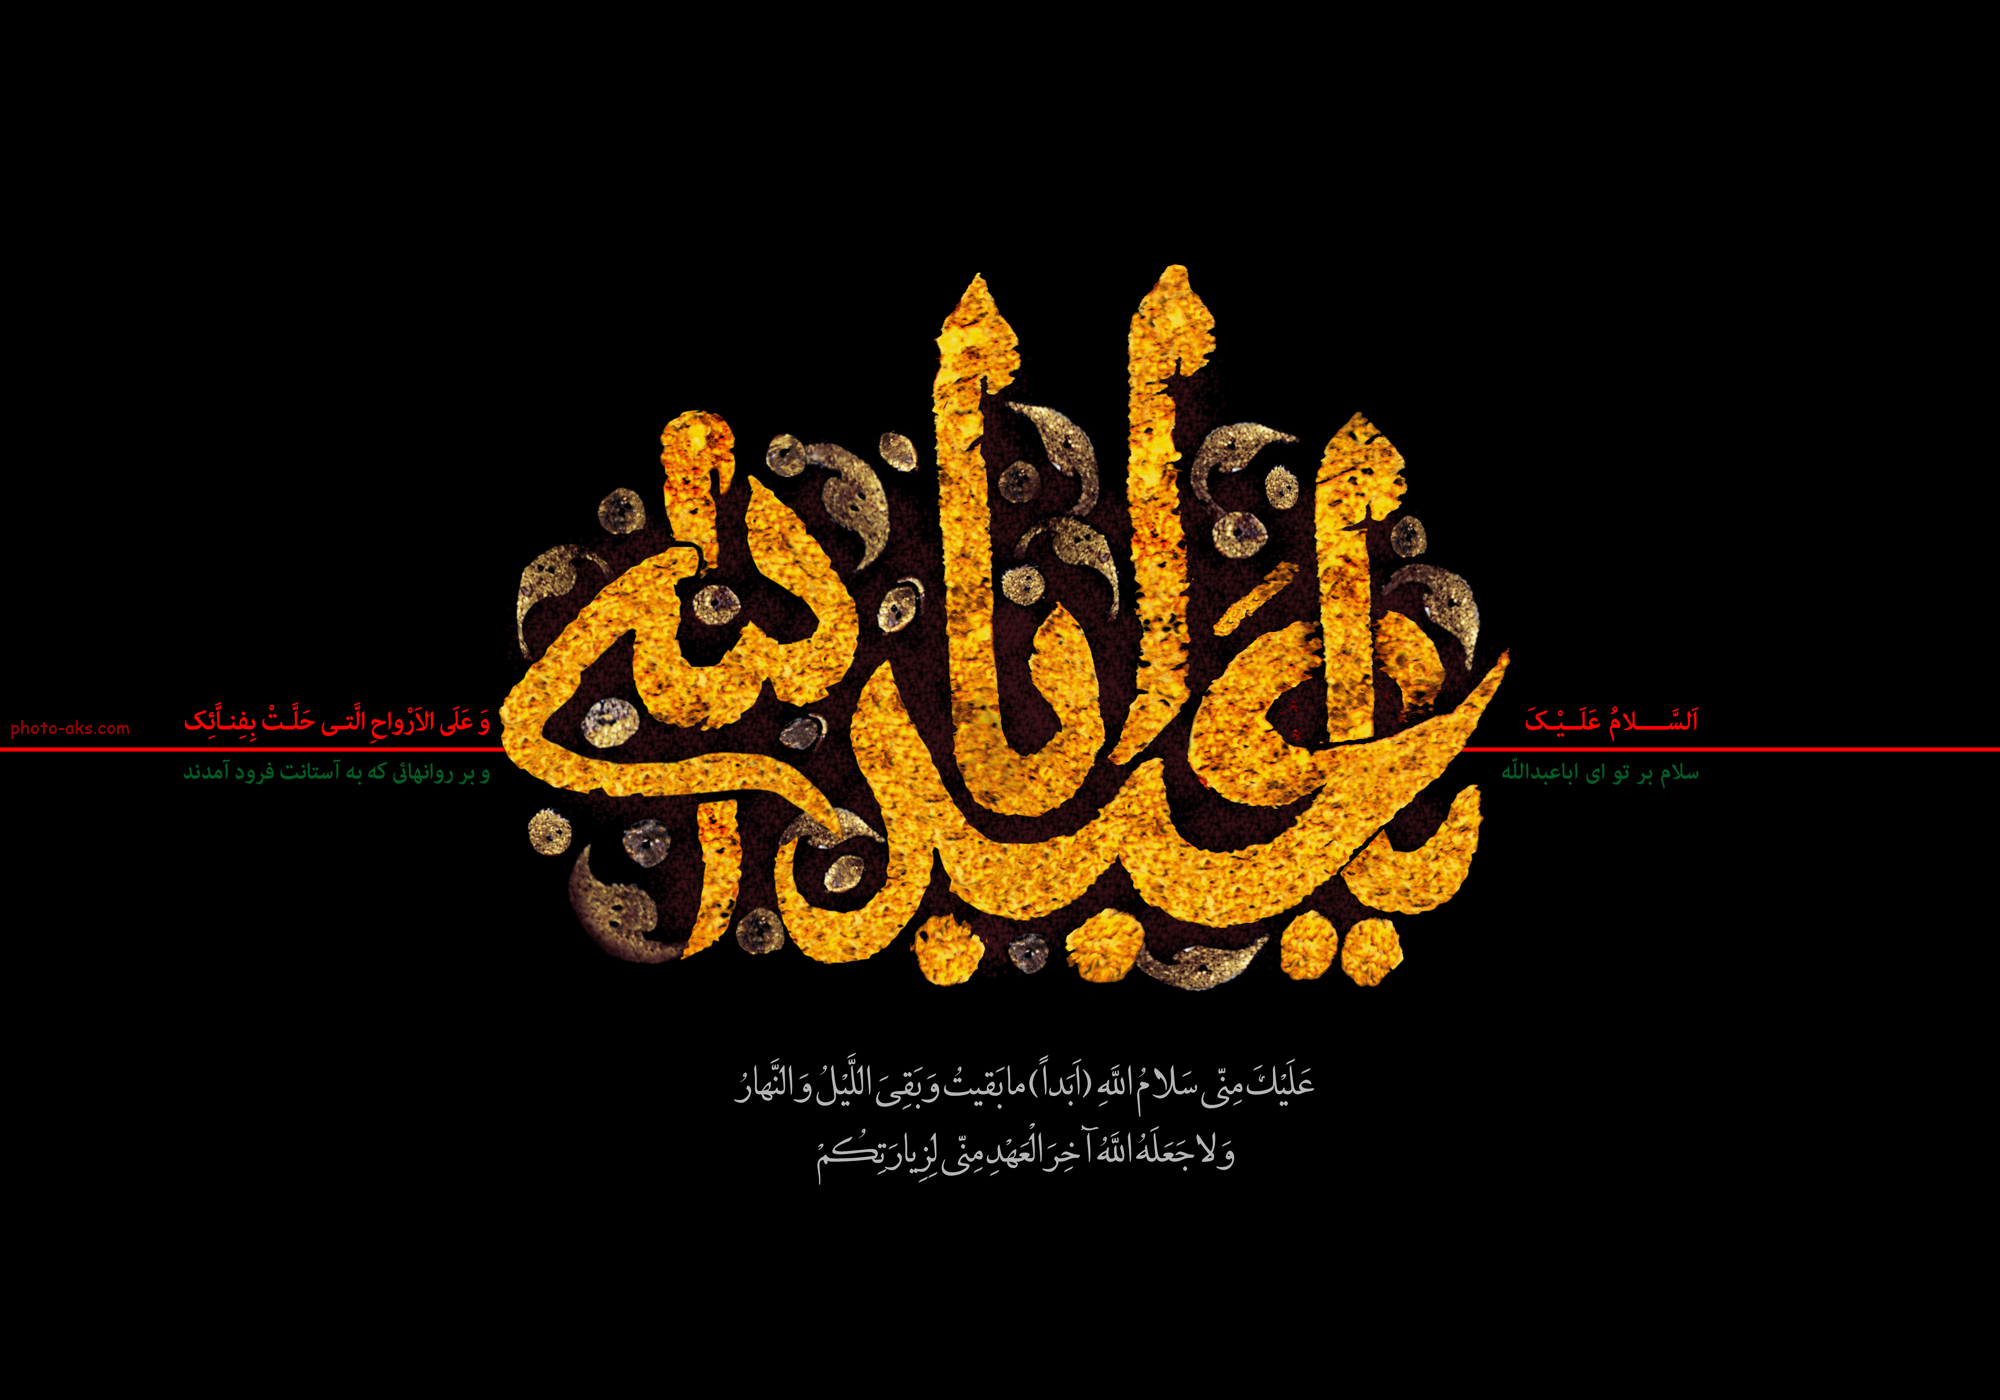 http://up.persianscript.ir/uploadsmedia/87f4-aba-abdolah.jpg